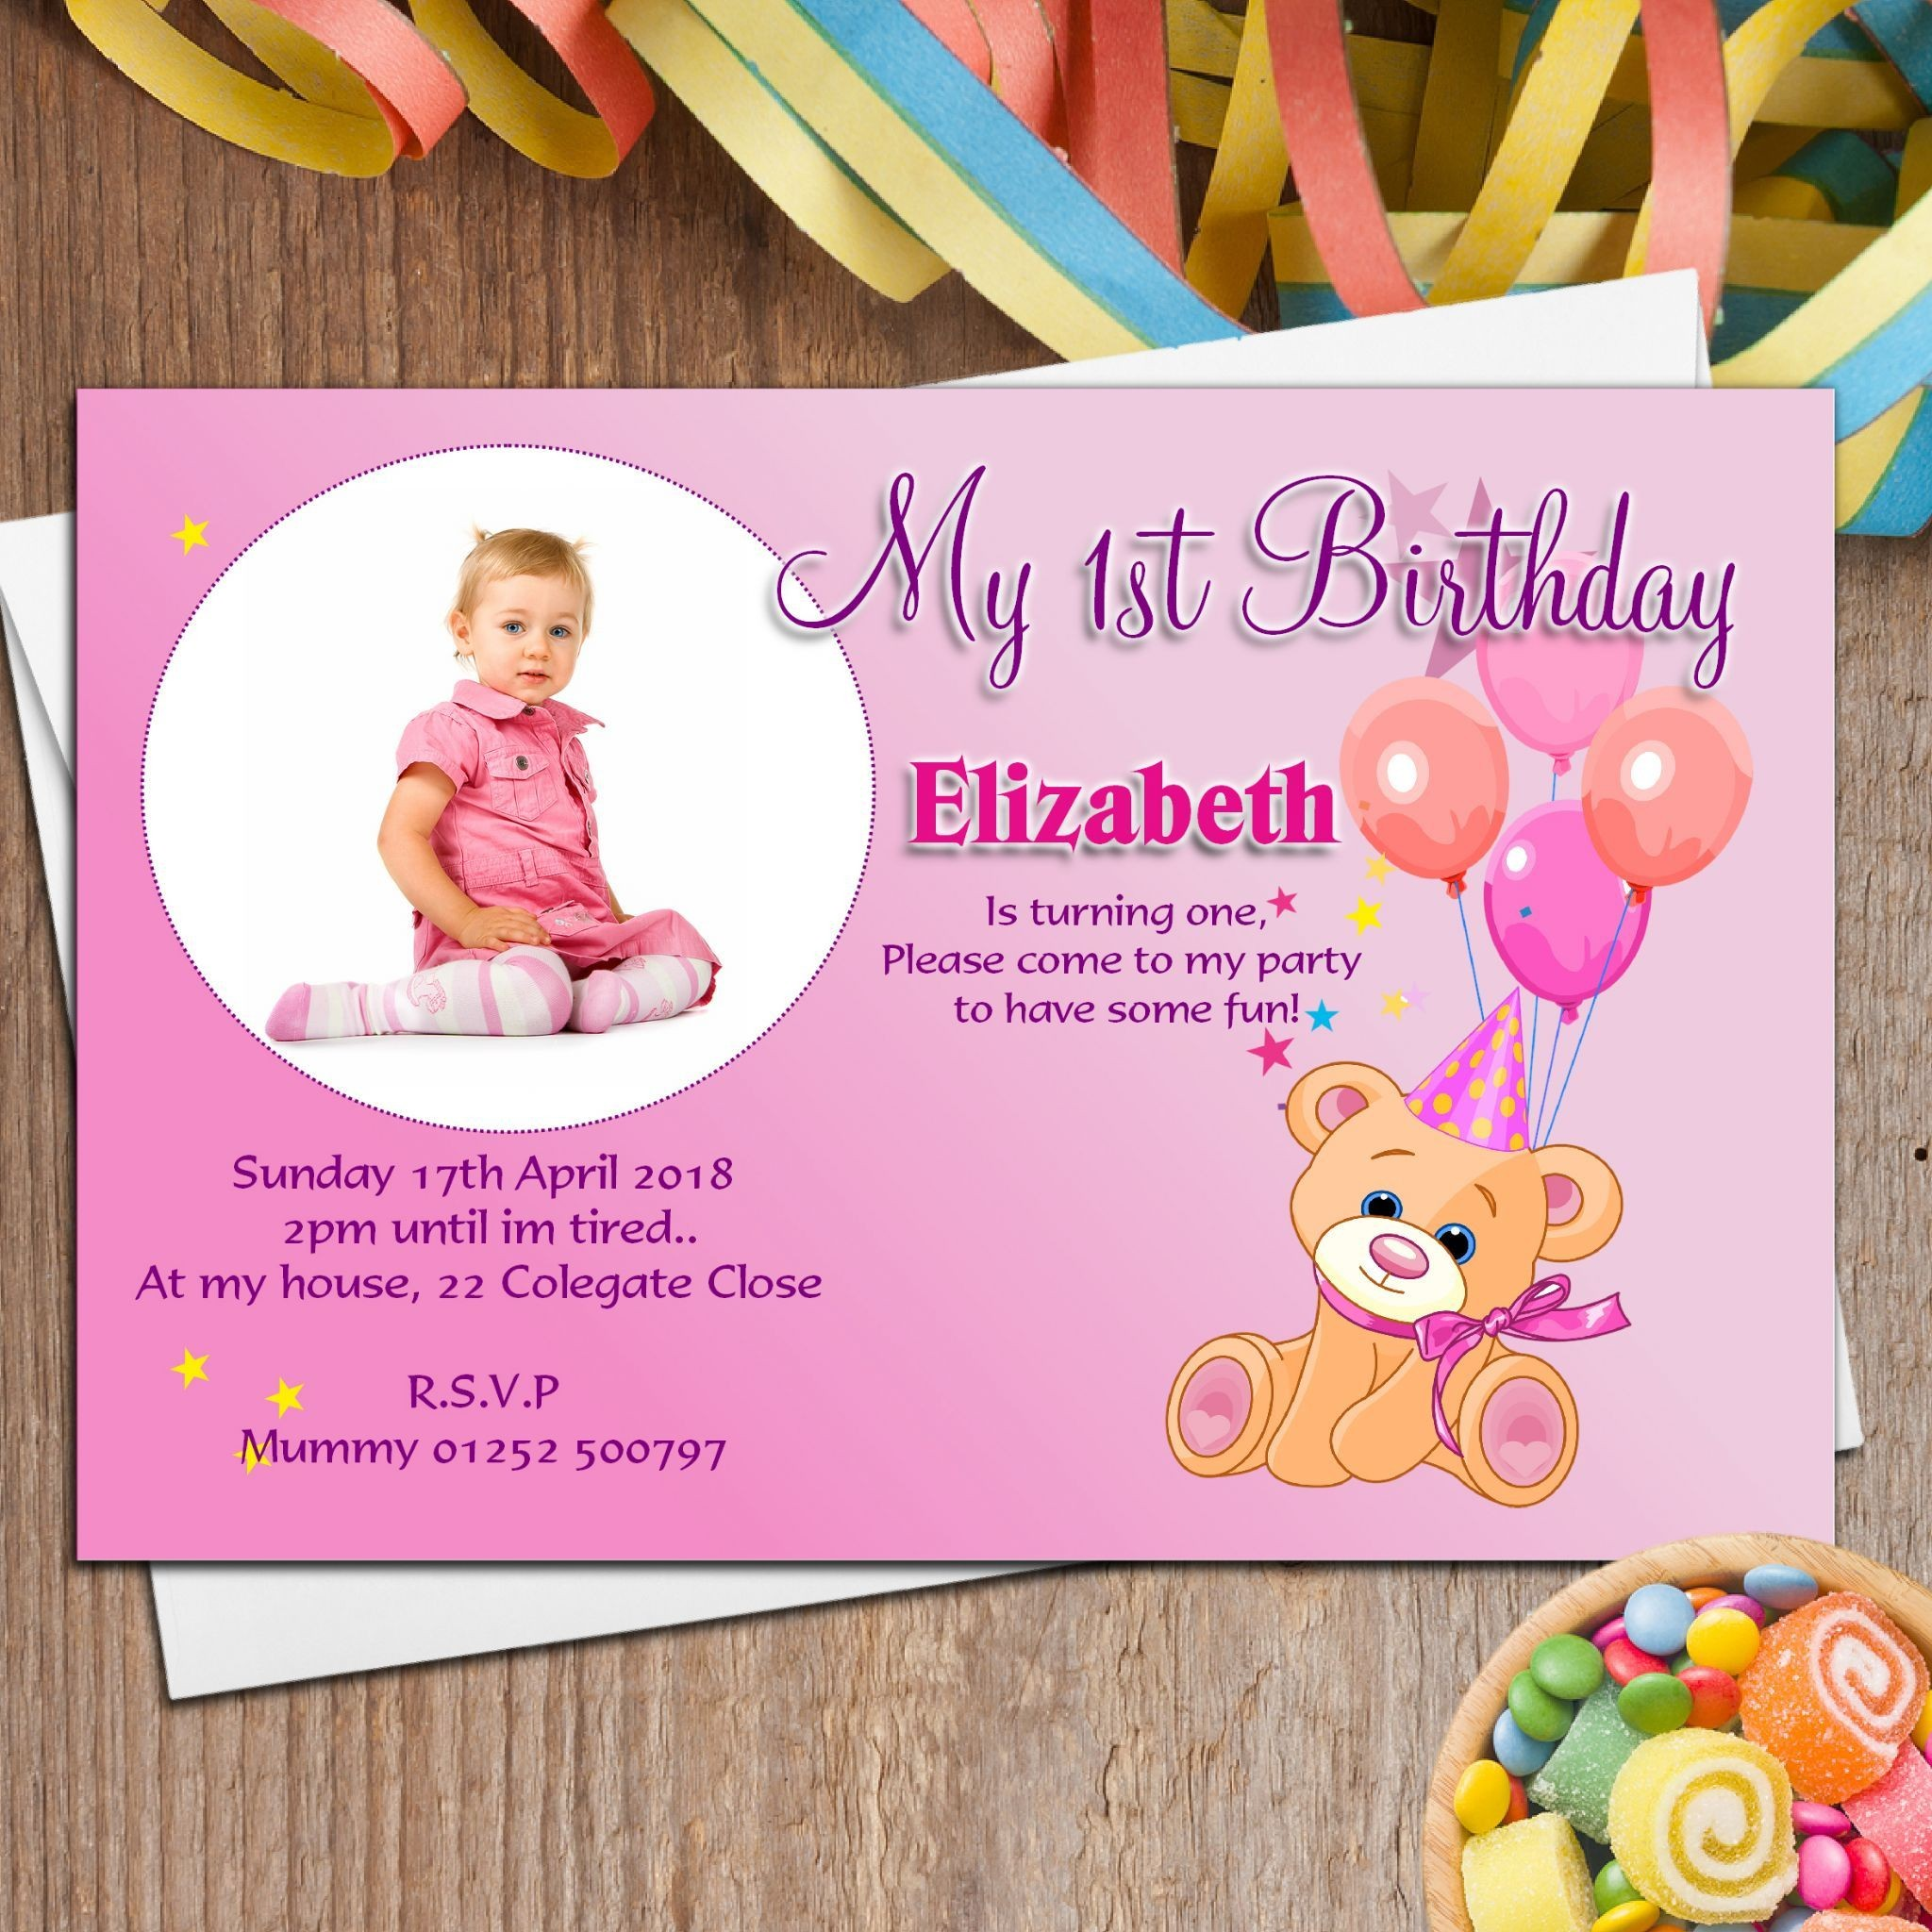 first birthday invitation cards india ; Invitation-Cards-Of-First-Birthday-New-St-Birthday-Invitation-Cards-For-Baby-Boy-In-India-Of-Invitation-Cards-Of-First-Birthday-Pics-On-First-Birthday-Invitation-Cards-Boy